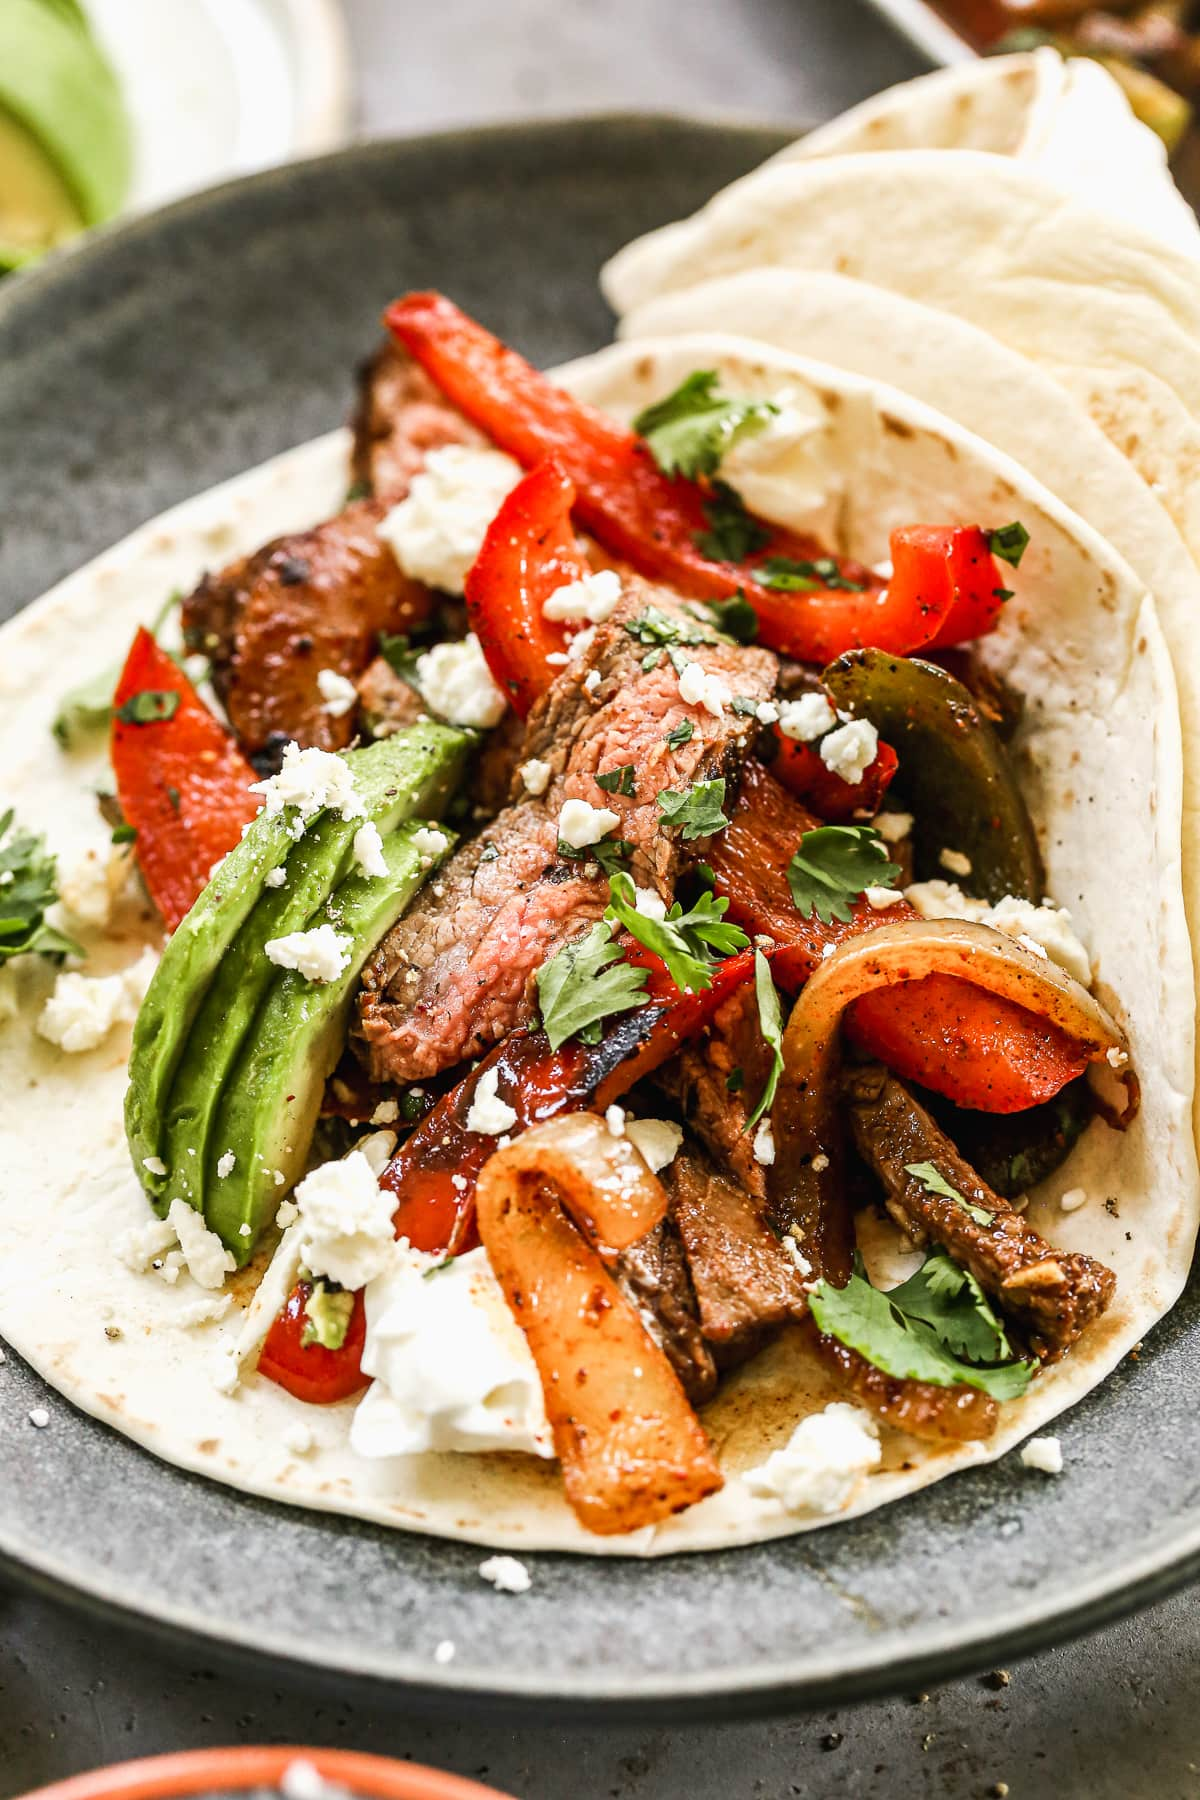 Tender beef fajitas with cheese and avocado